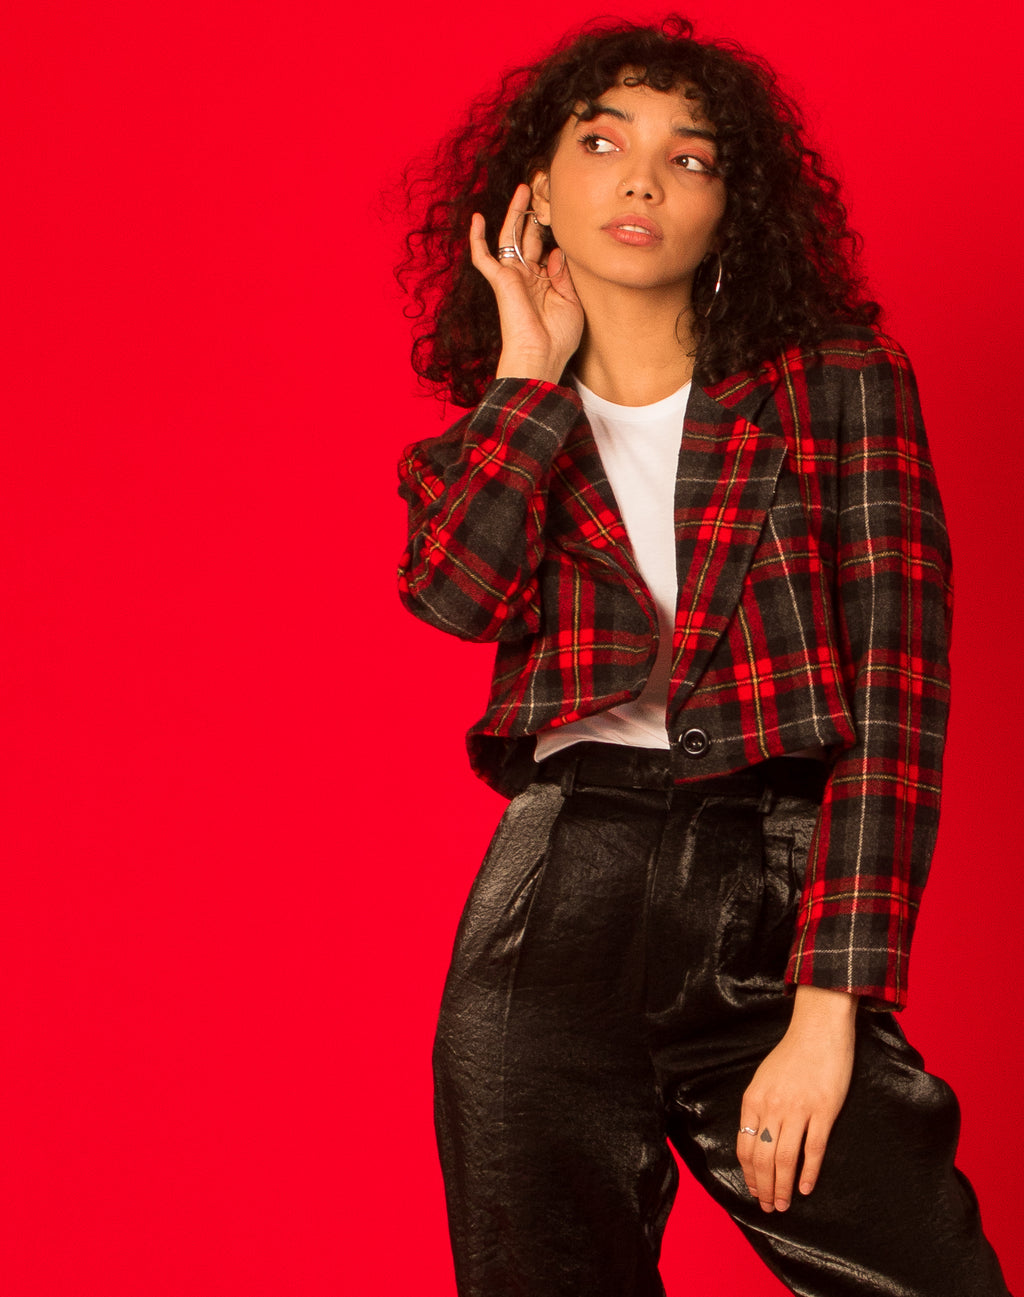 RED CHECKERED CROPPED BLAZER